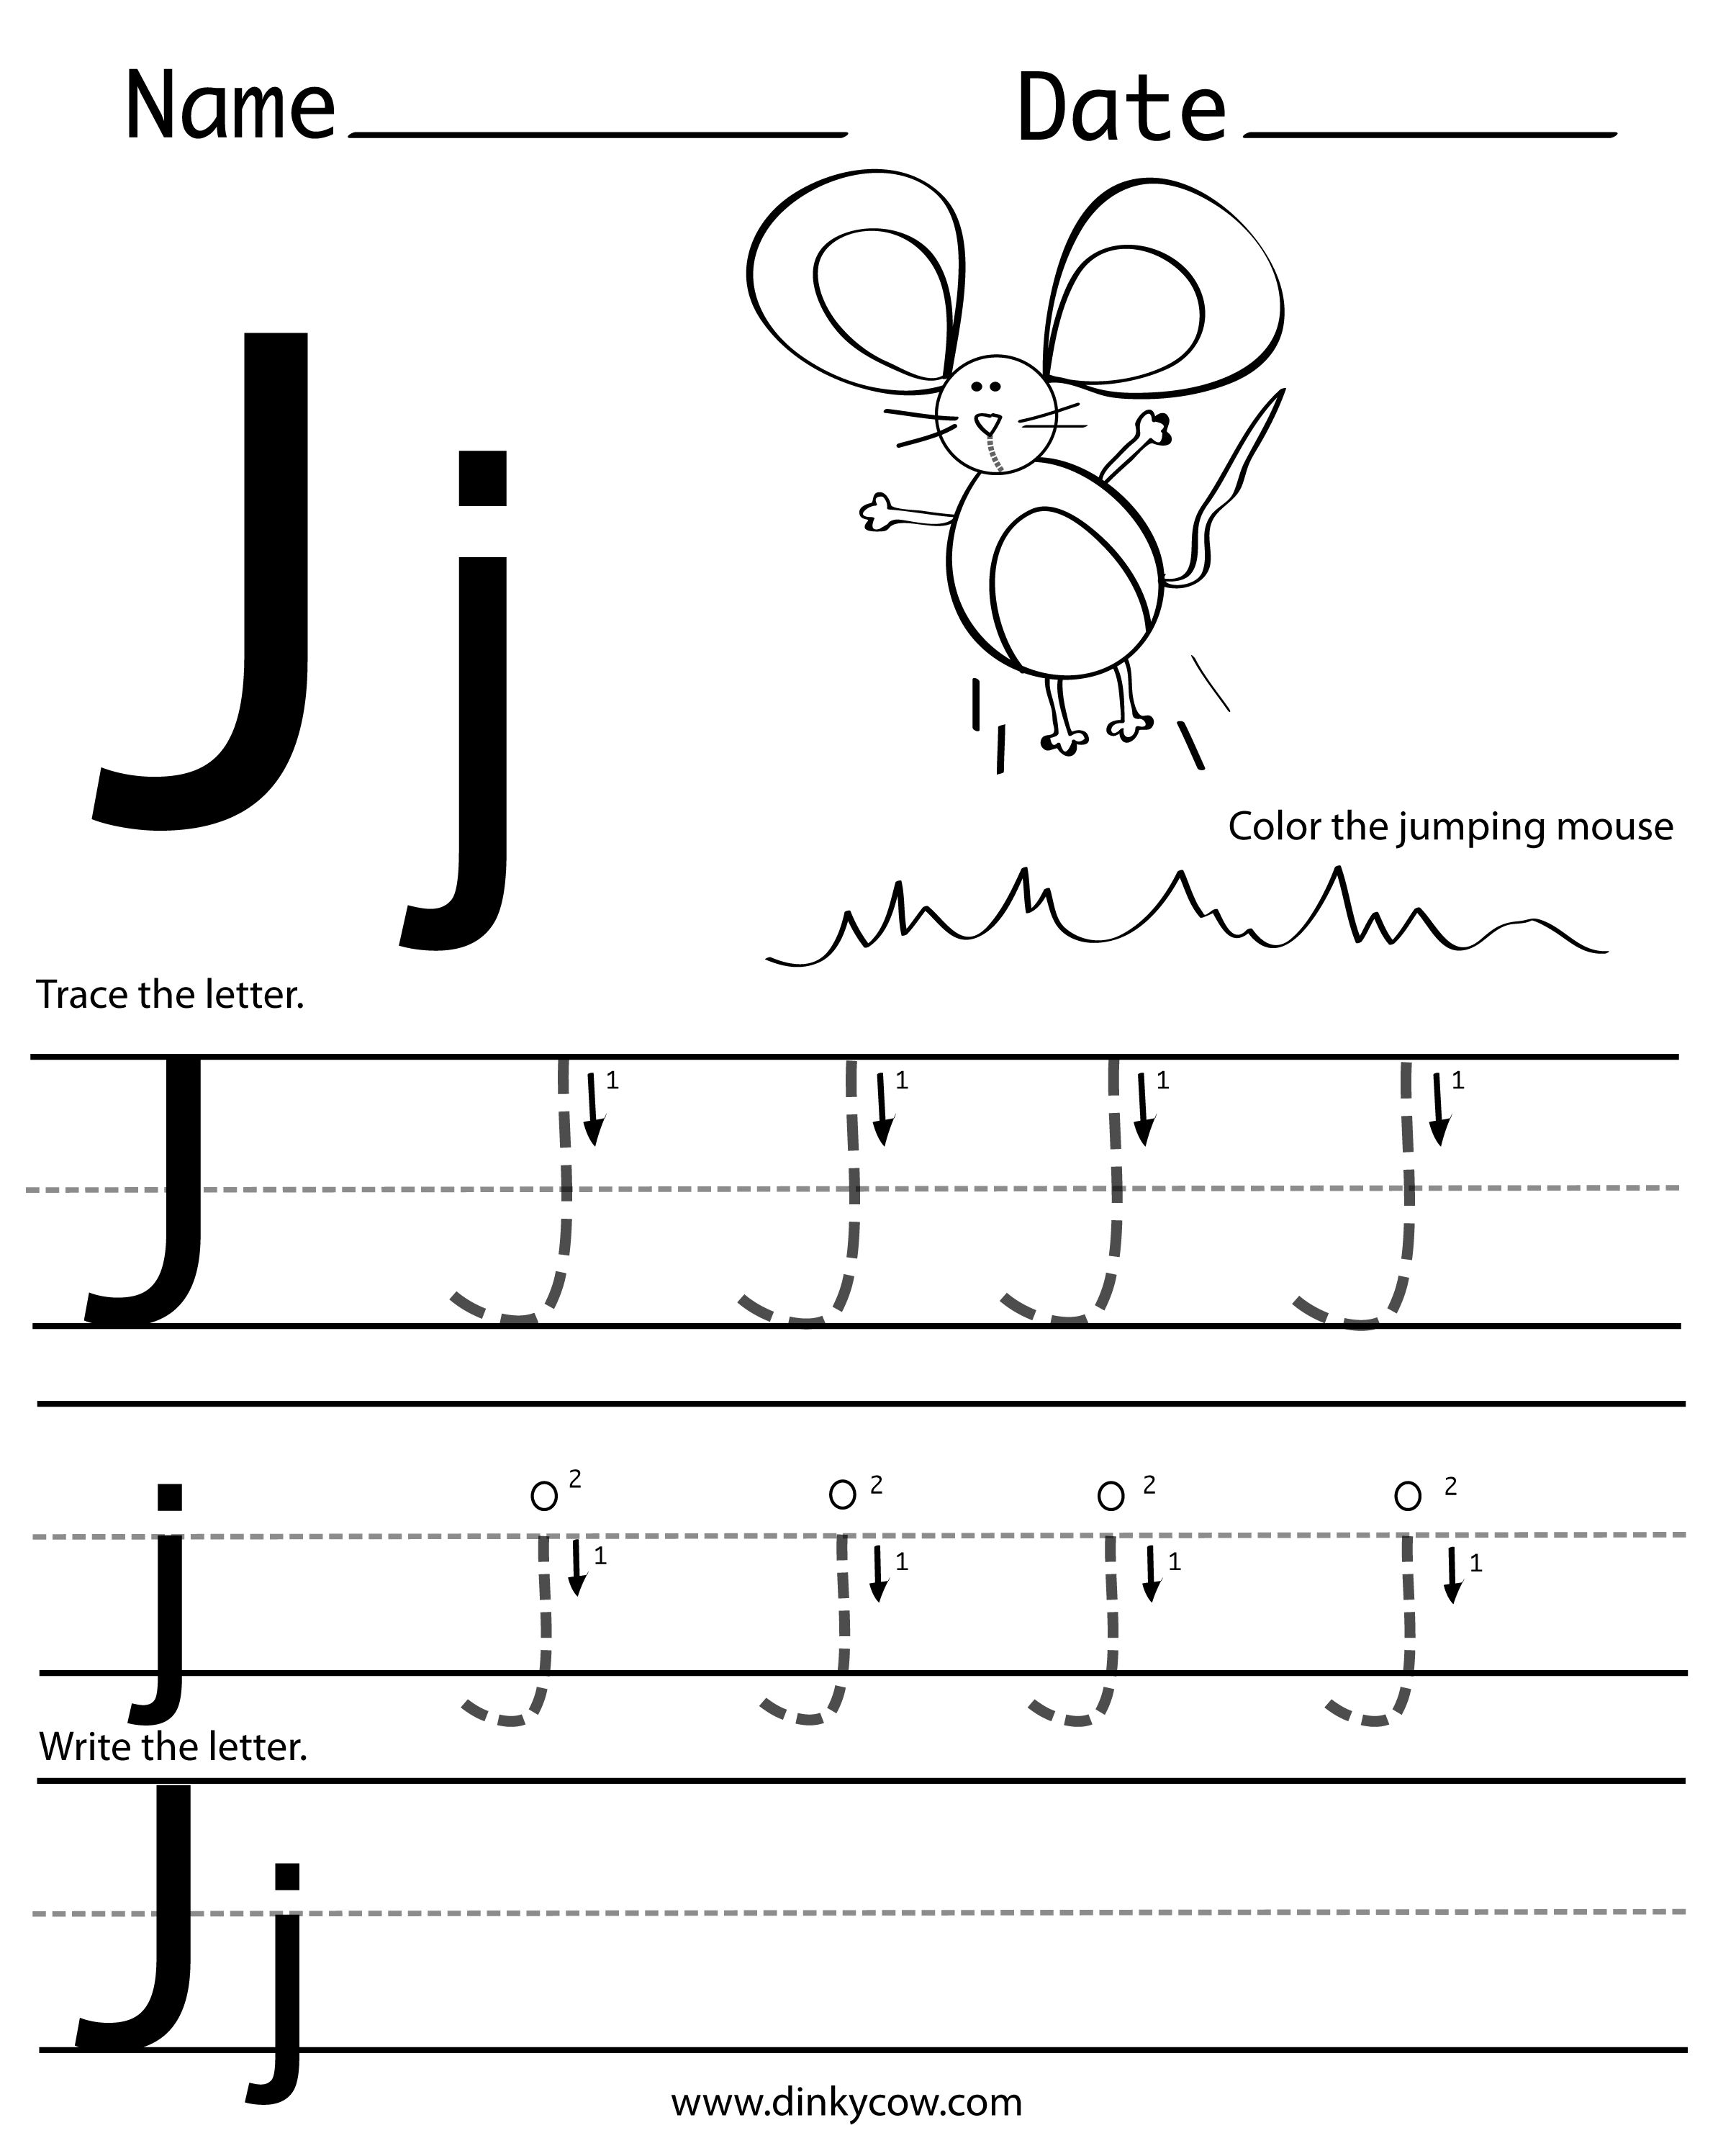 Letter J Halloween Worksheet